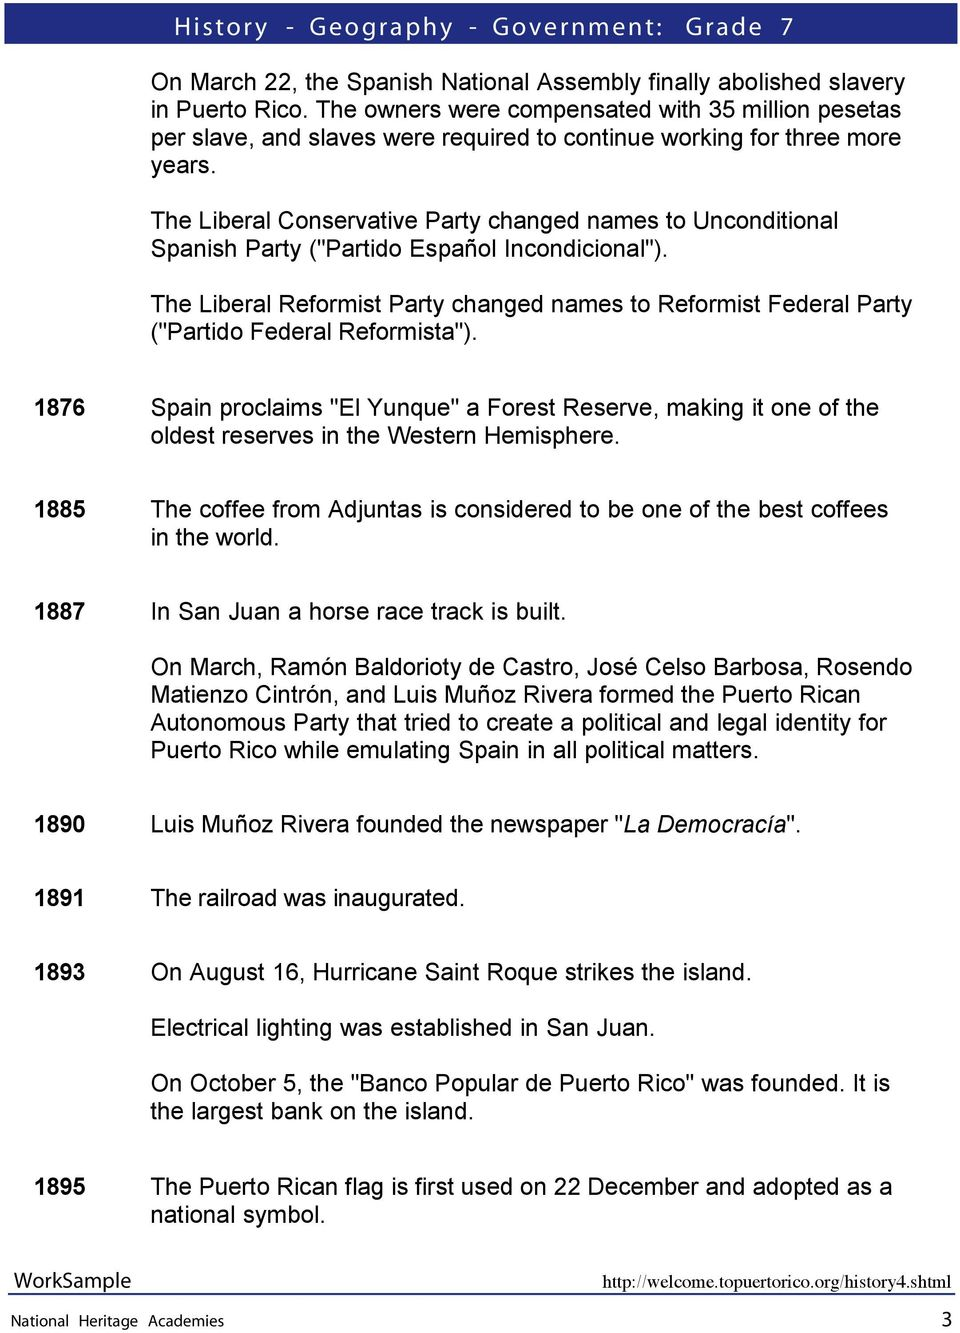 "The Liberal Conservative Party changed names to Unconditional Spanish Party (""Partido Español Incondicional"")."